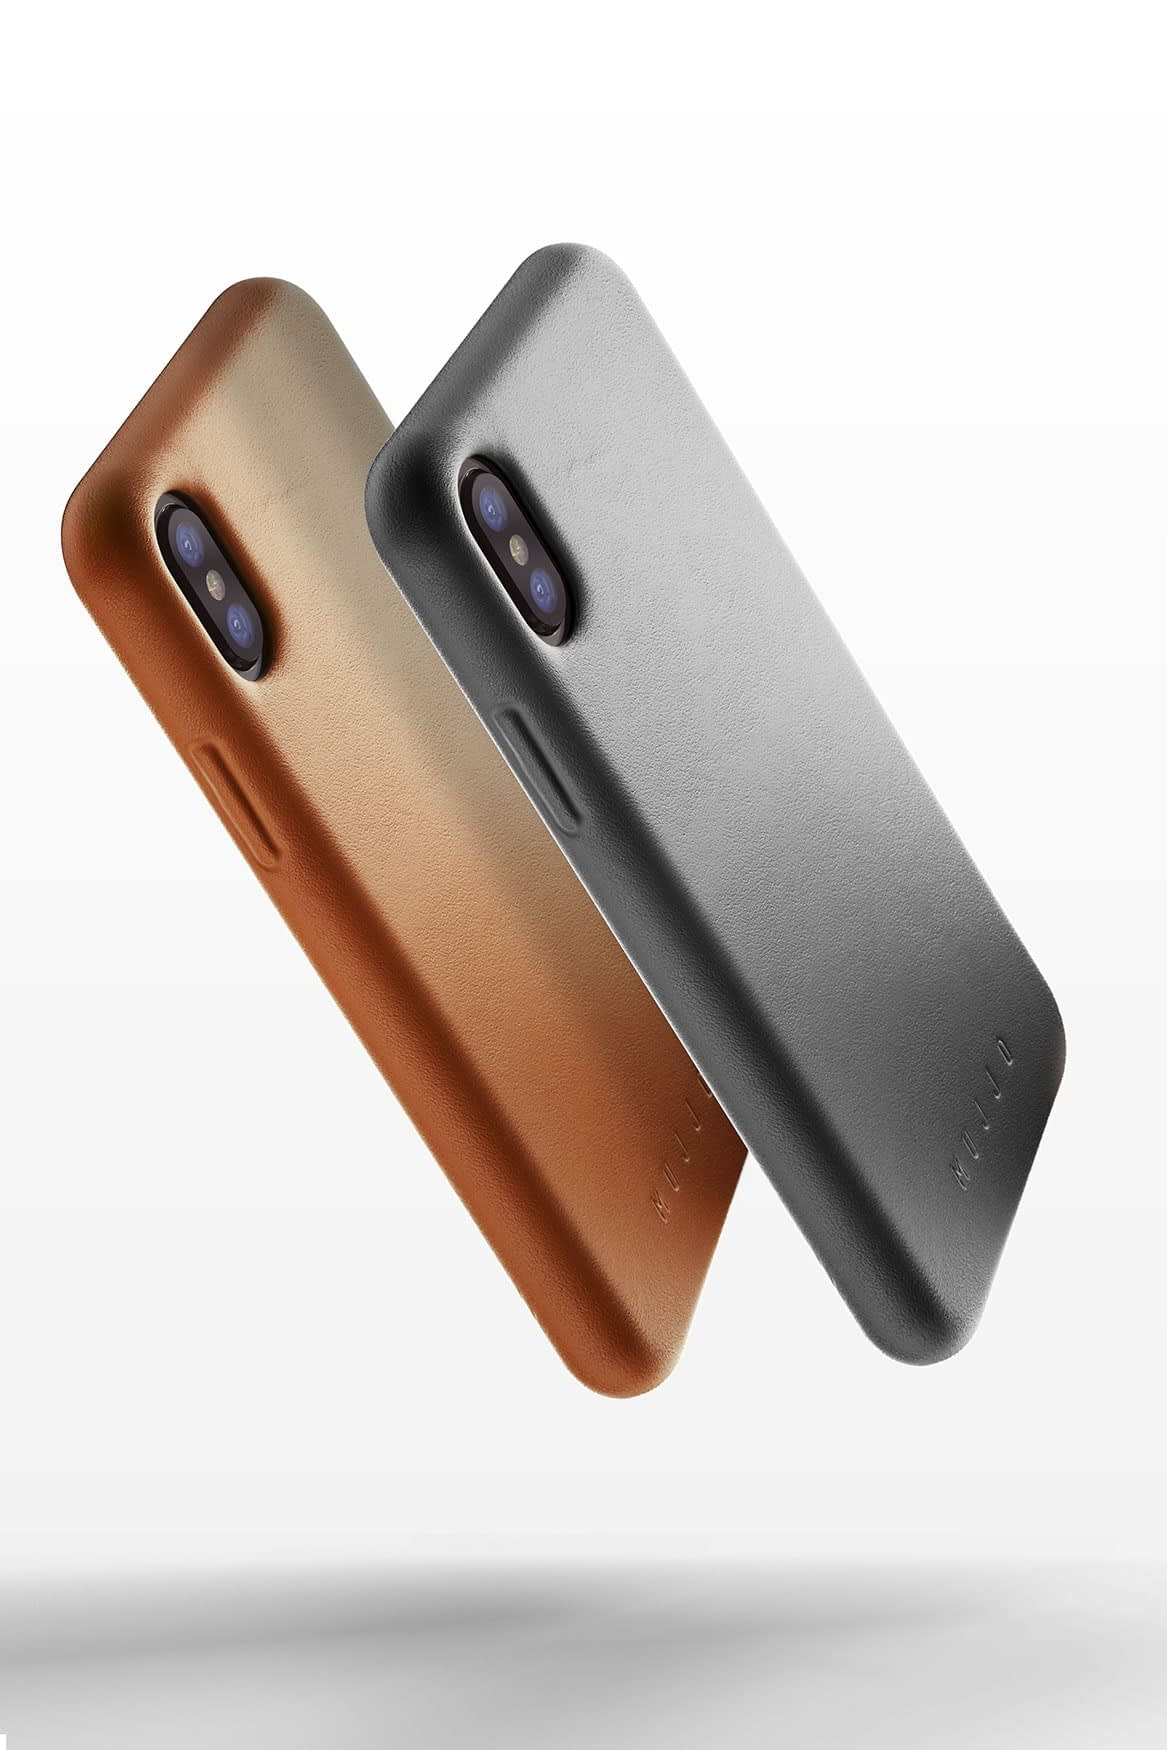 Full leather case for iPhone X Gray Line up 03